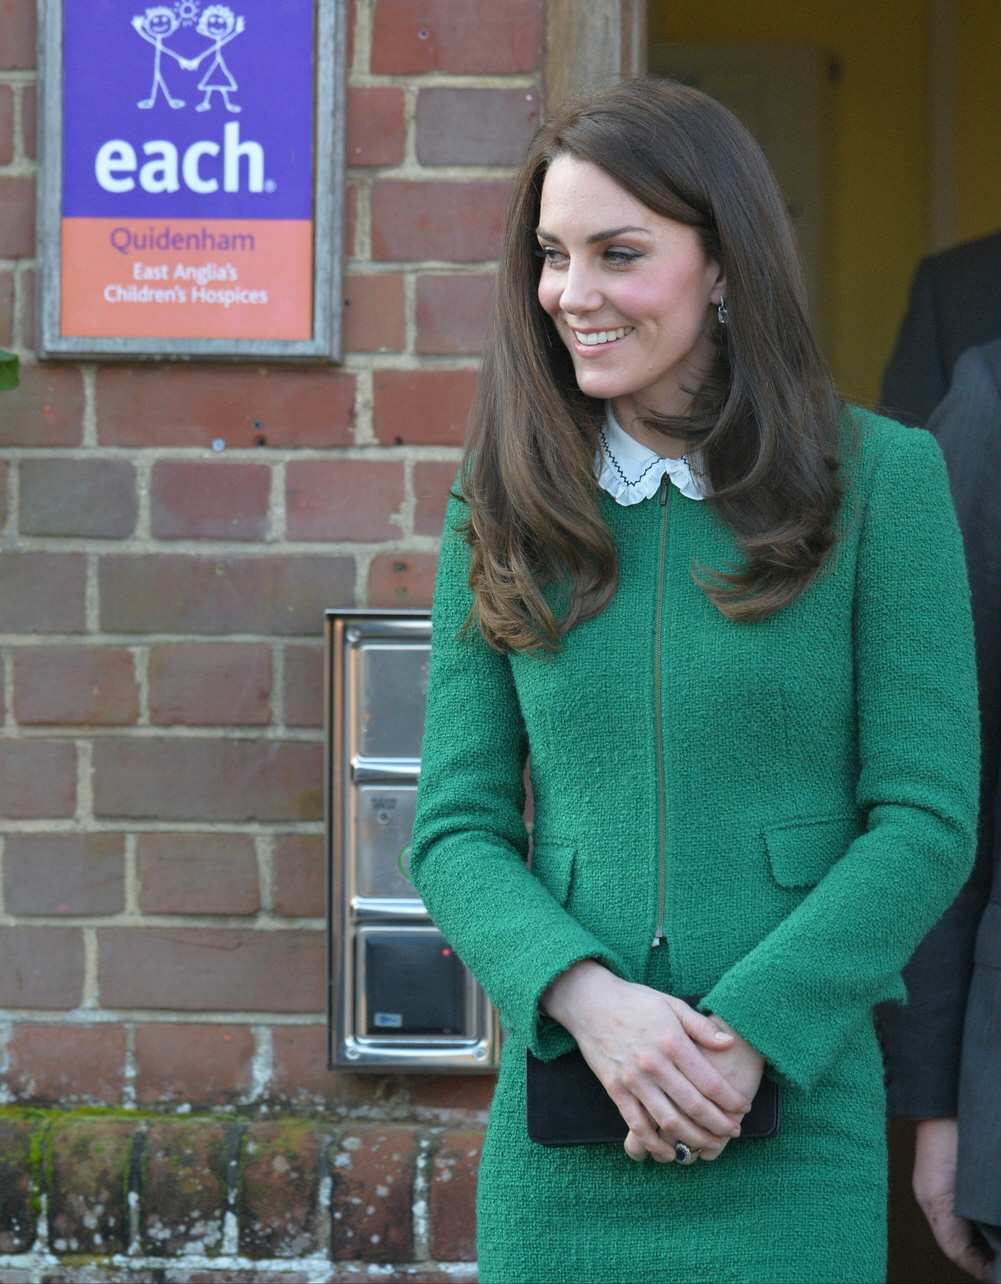 161215PCN_DuchessCambridgeMGS055  bitchy | Duchess Kate is 'fortunate' to be an actual princess as a result of she's 'properly taken care of' 161215PCN DuchessCambridgeMGS055